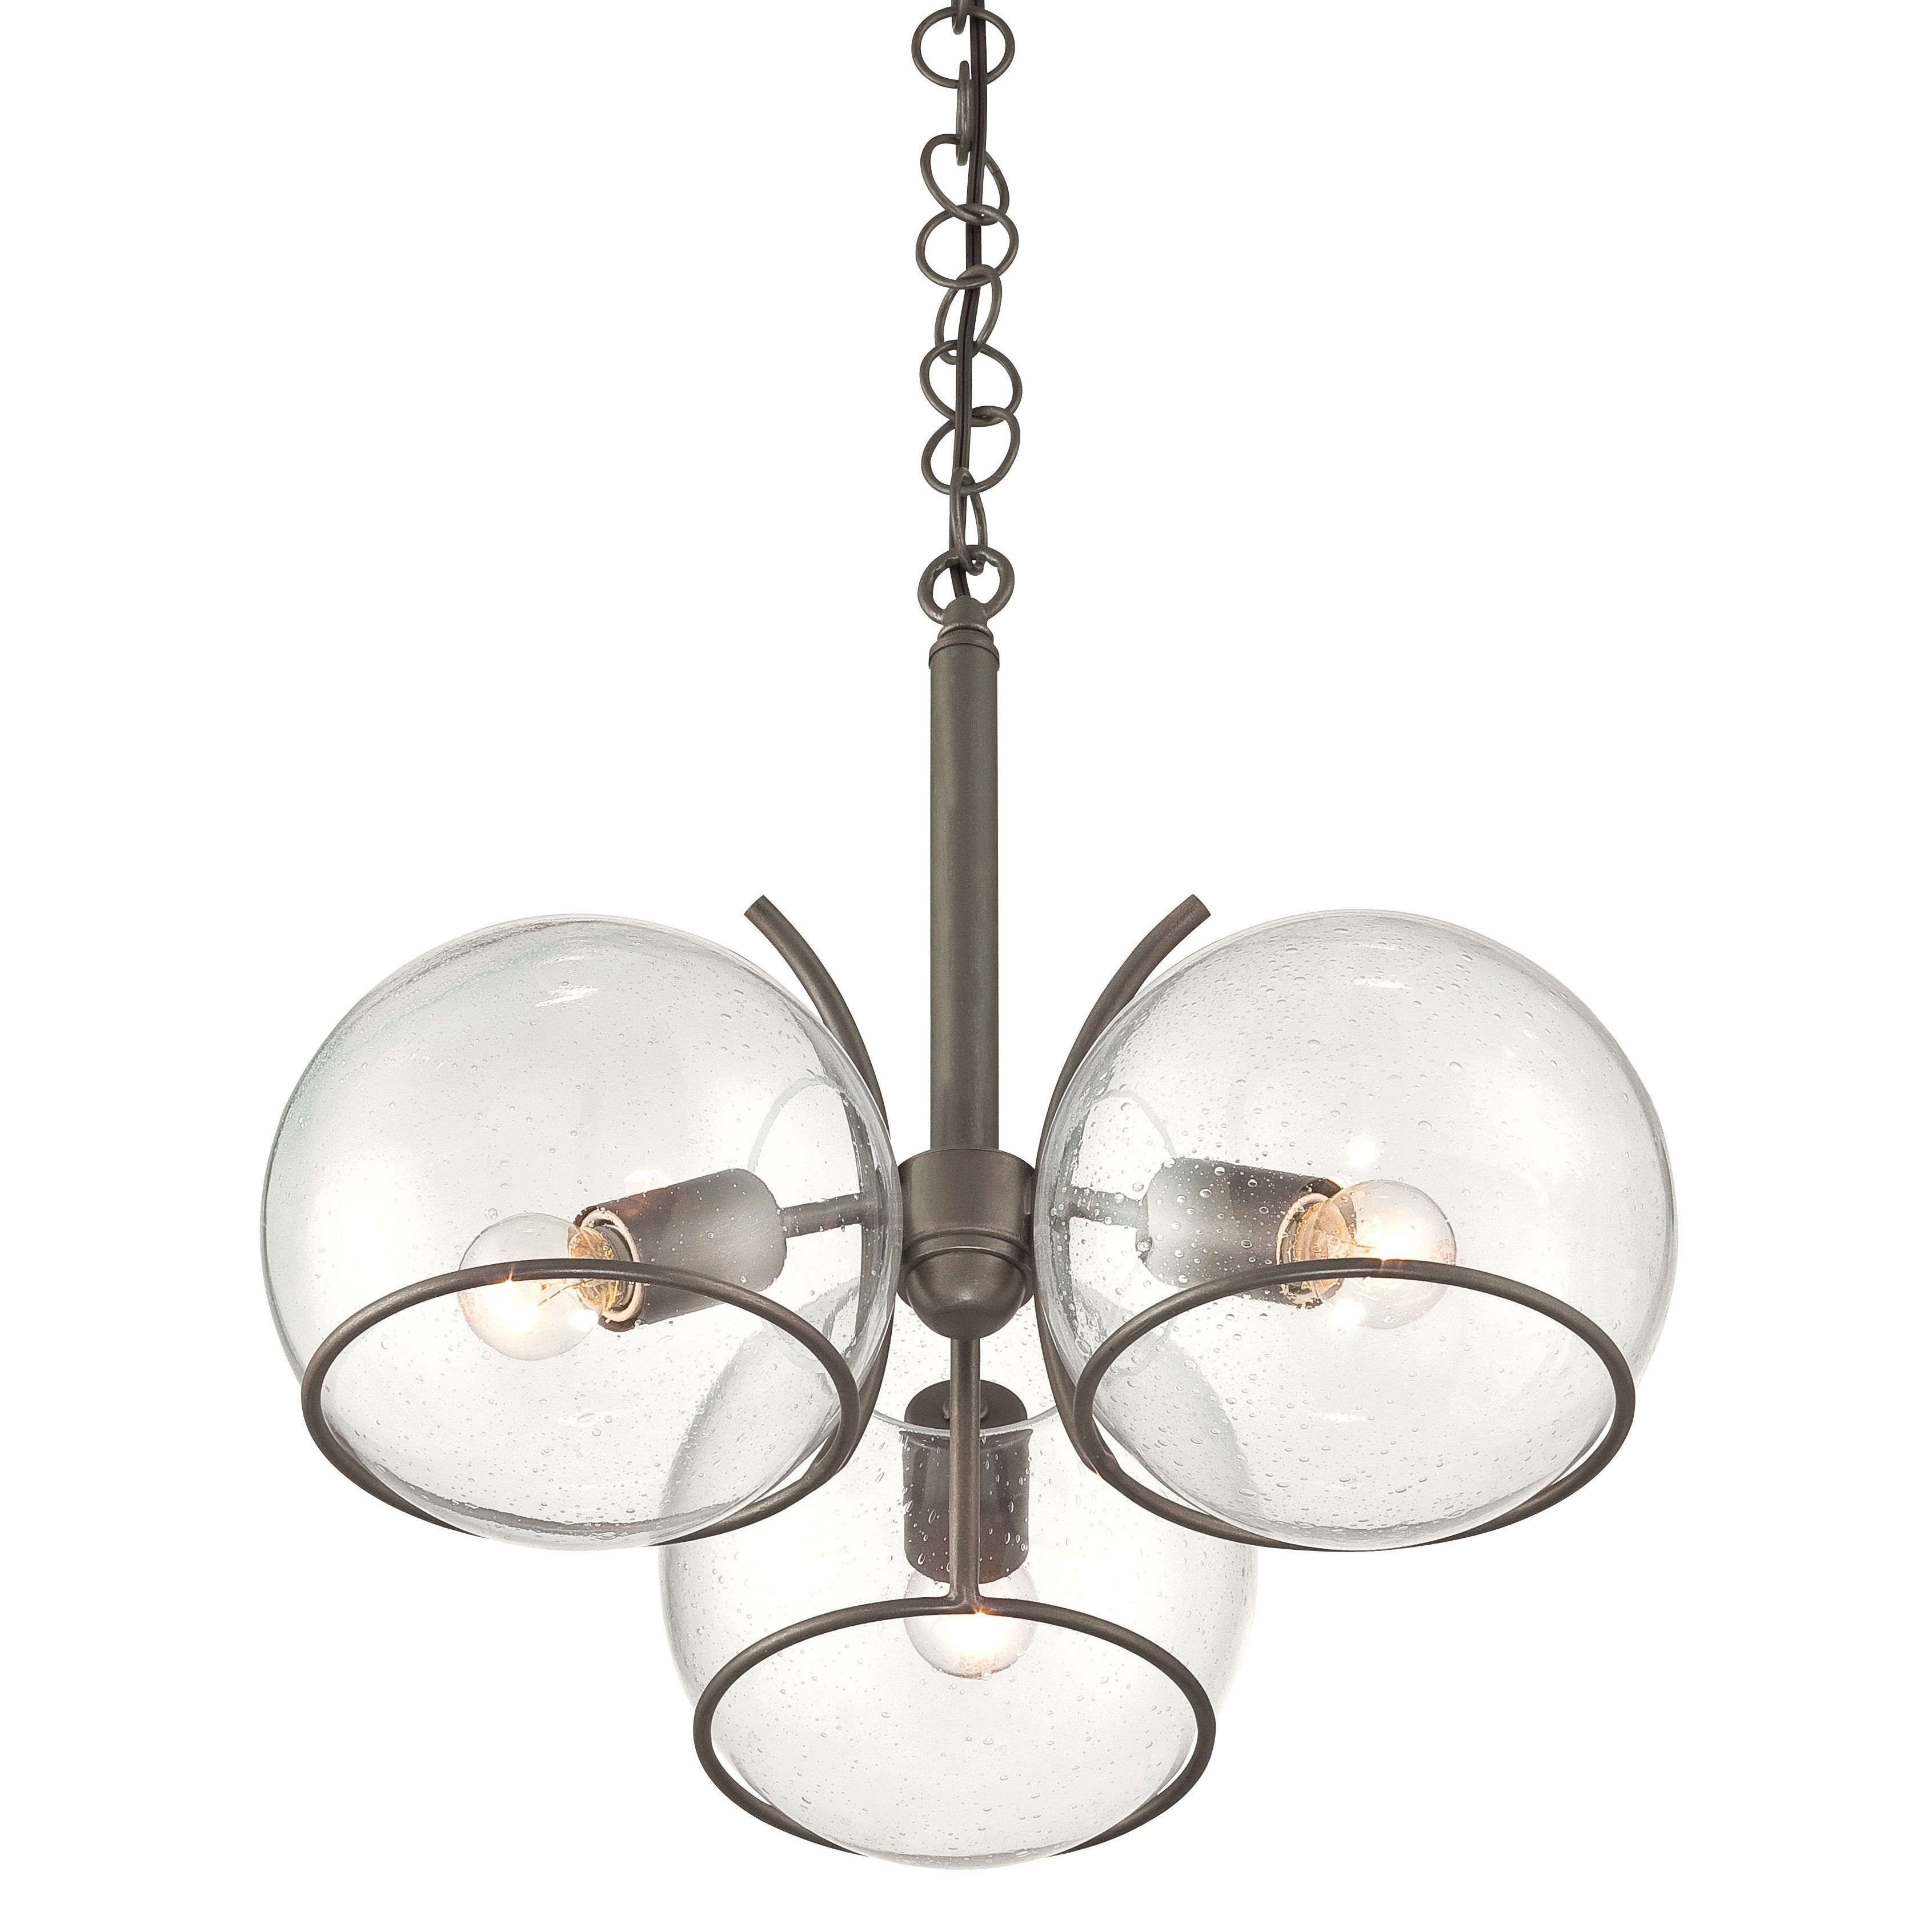 Varaluz watson clear seedy glass and metal 3 light chandelier varaluz watson clear seedy glass and metal 3 light chandelier overstock shopping aloadofball Images